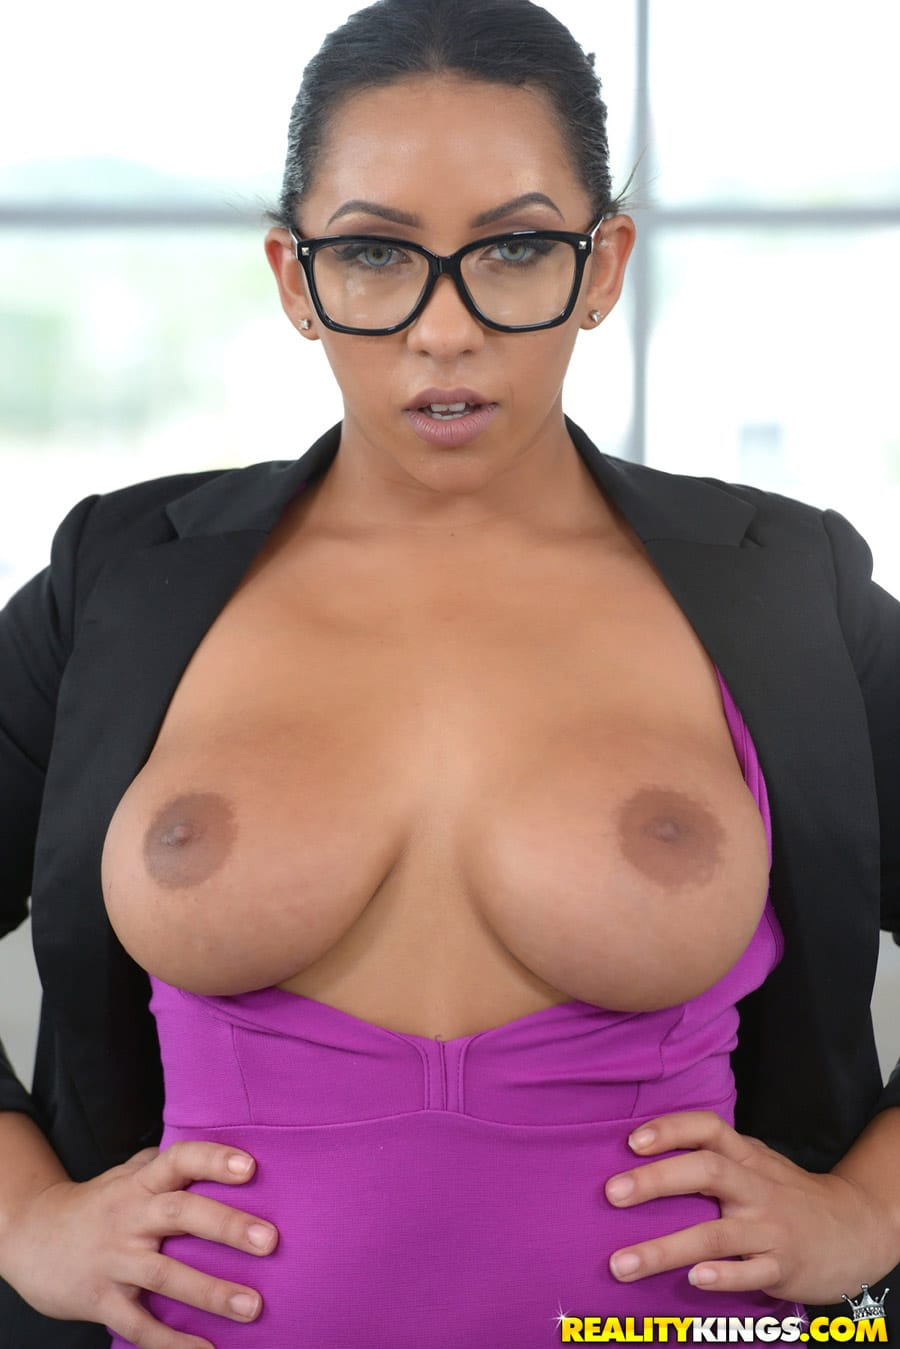 Very pity boob boss pic the